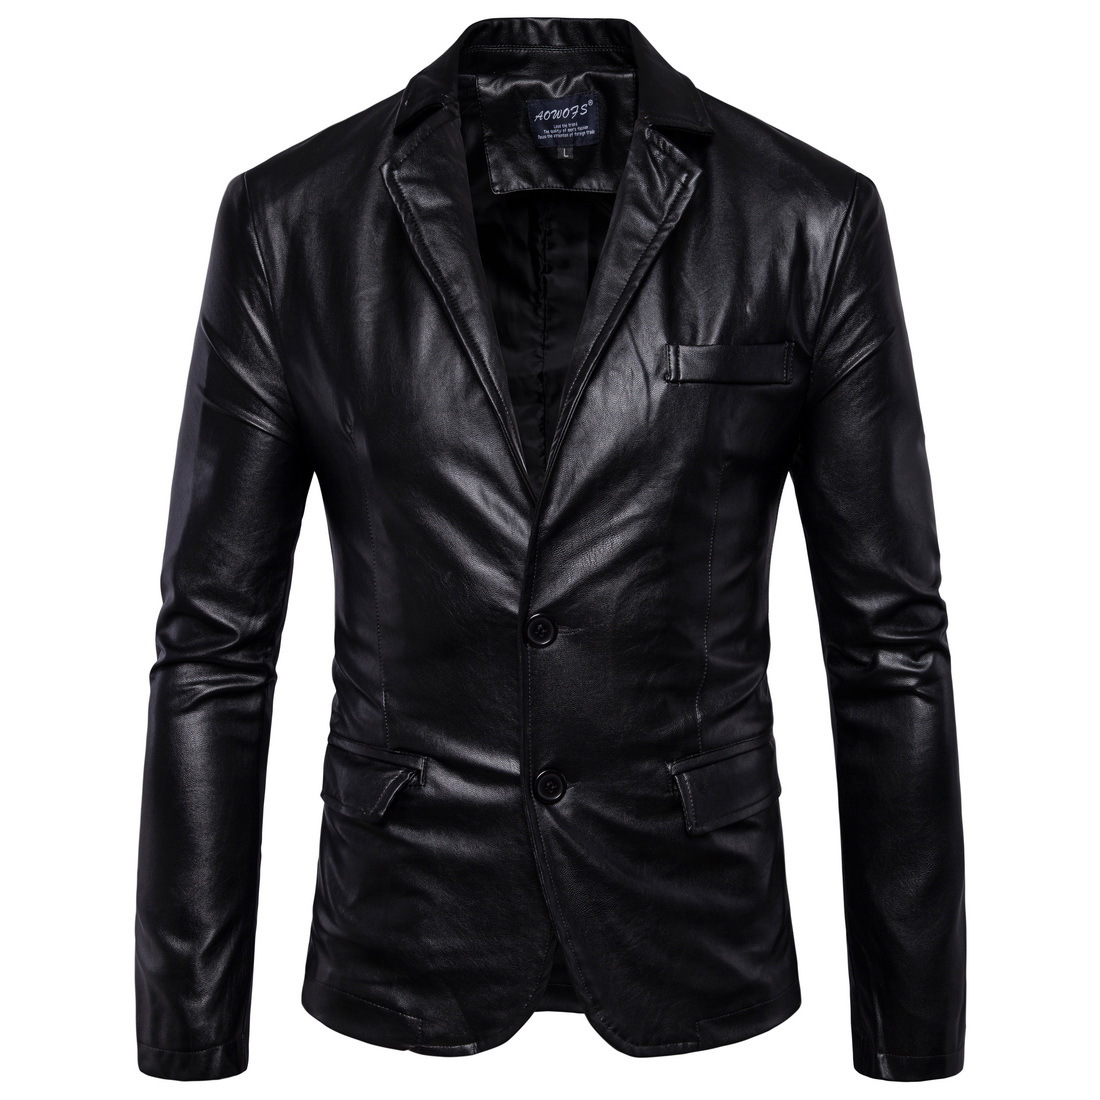 New Mens Leather Jackets 2 Button Formal Dress Suits Fashion Man Blazers Black Brown Solid Motorcycle Coat Suede Jacket Male